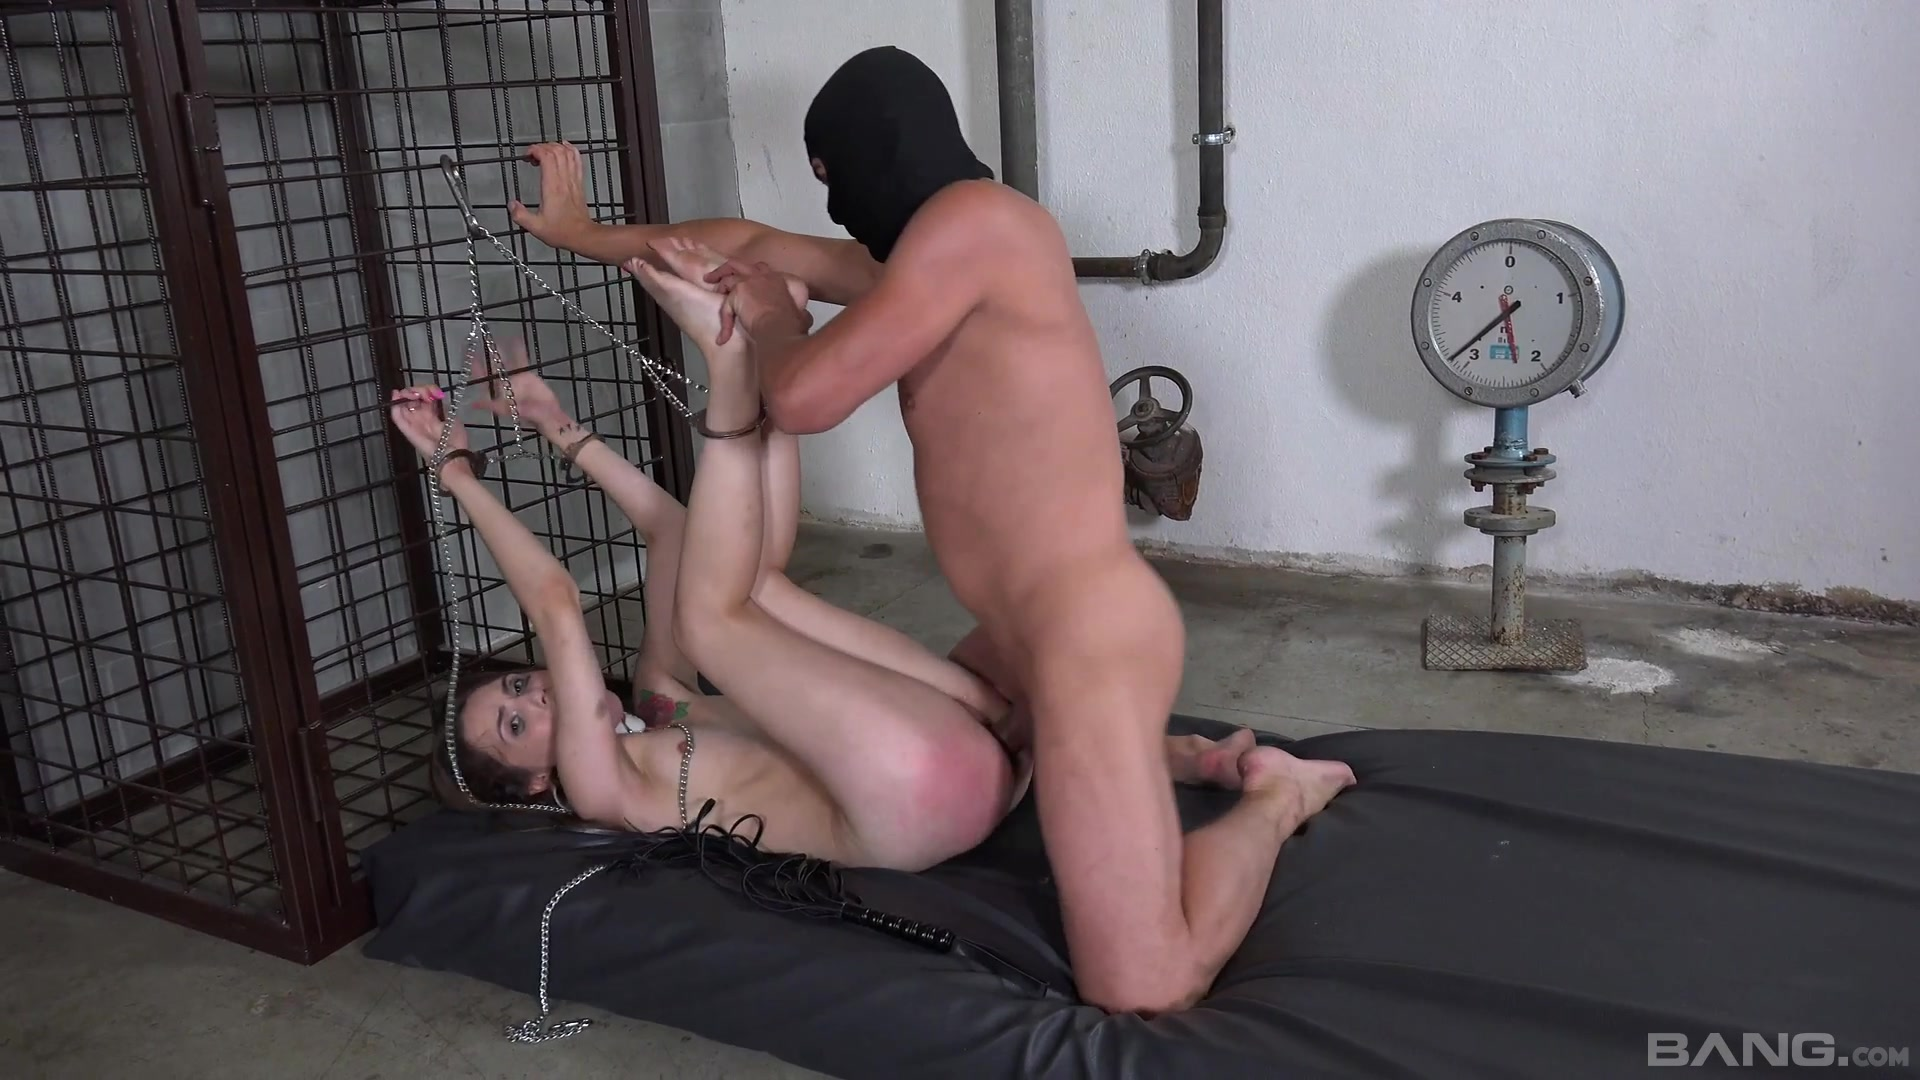 Bitch gets ass spanked by her master then brutally fucked